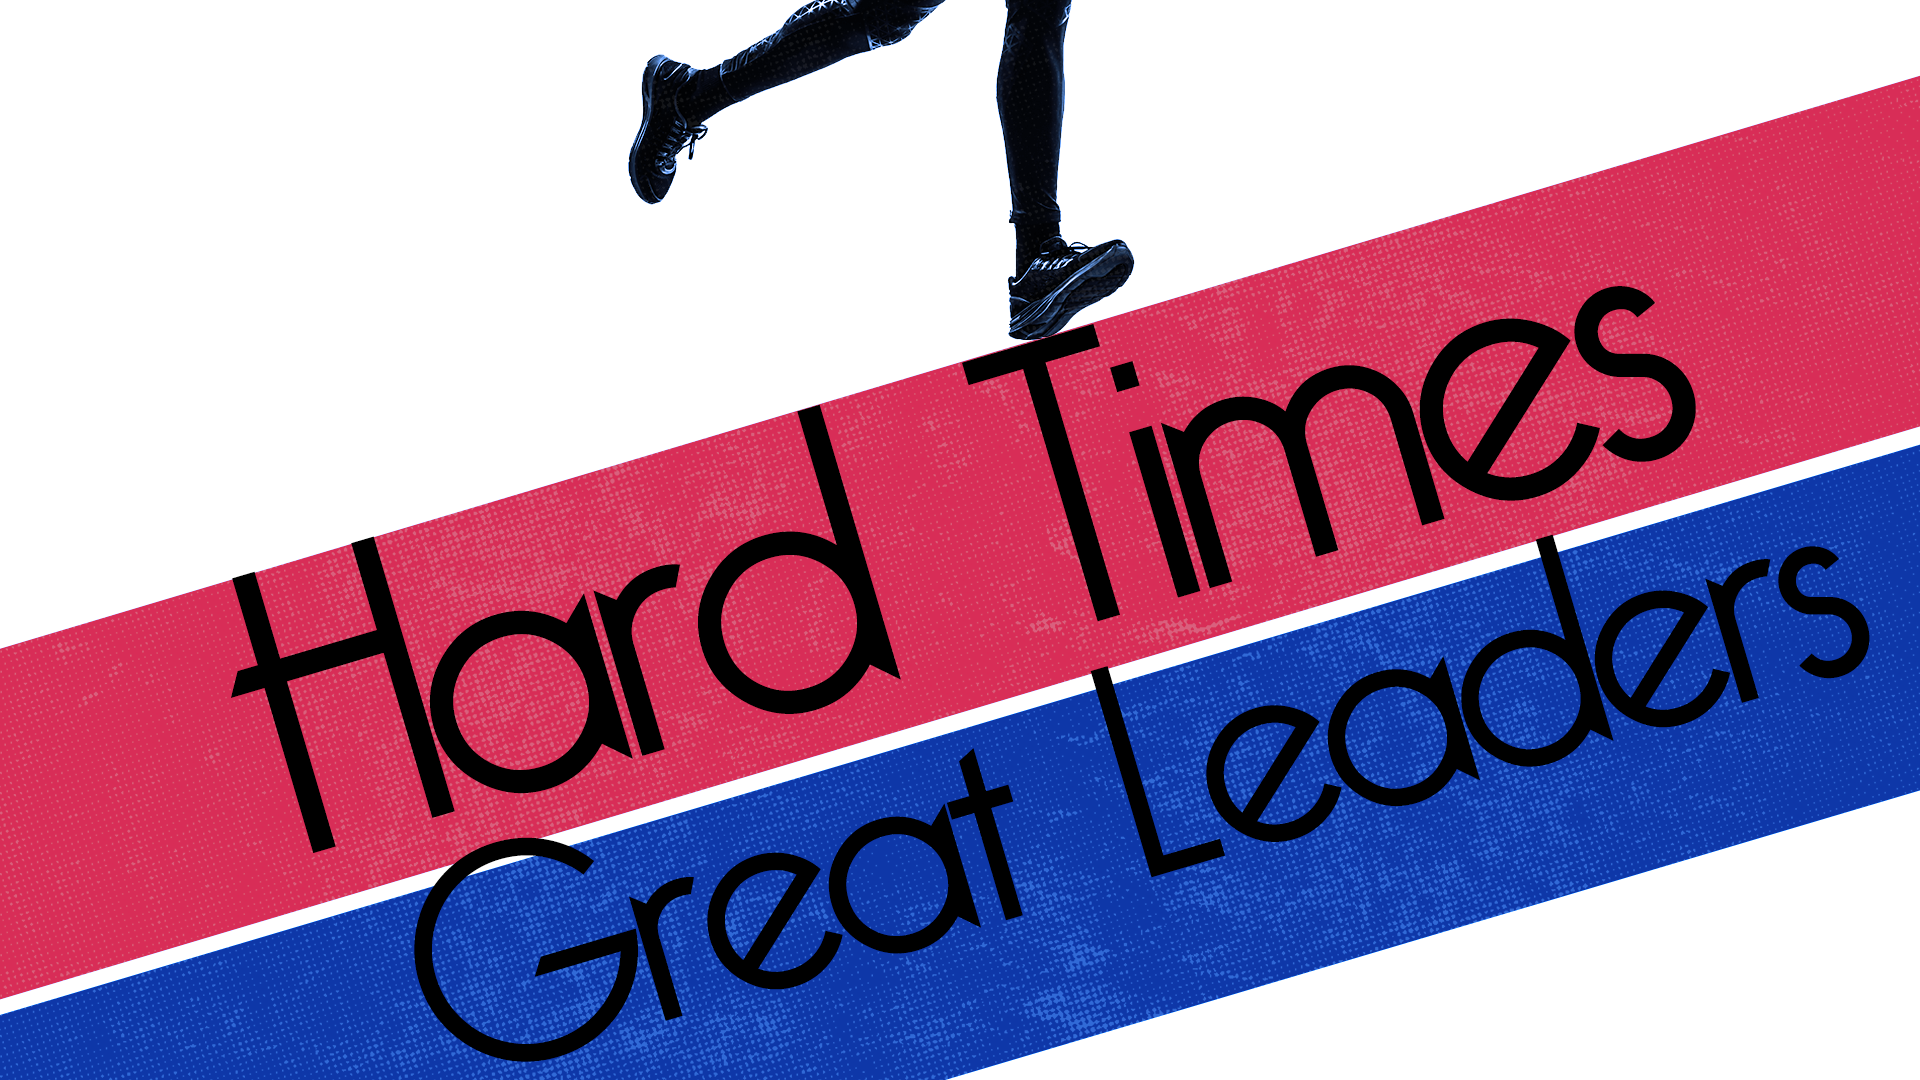 Hard Times—Great Leaders